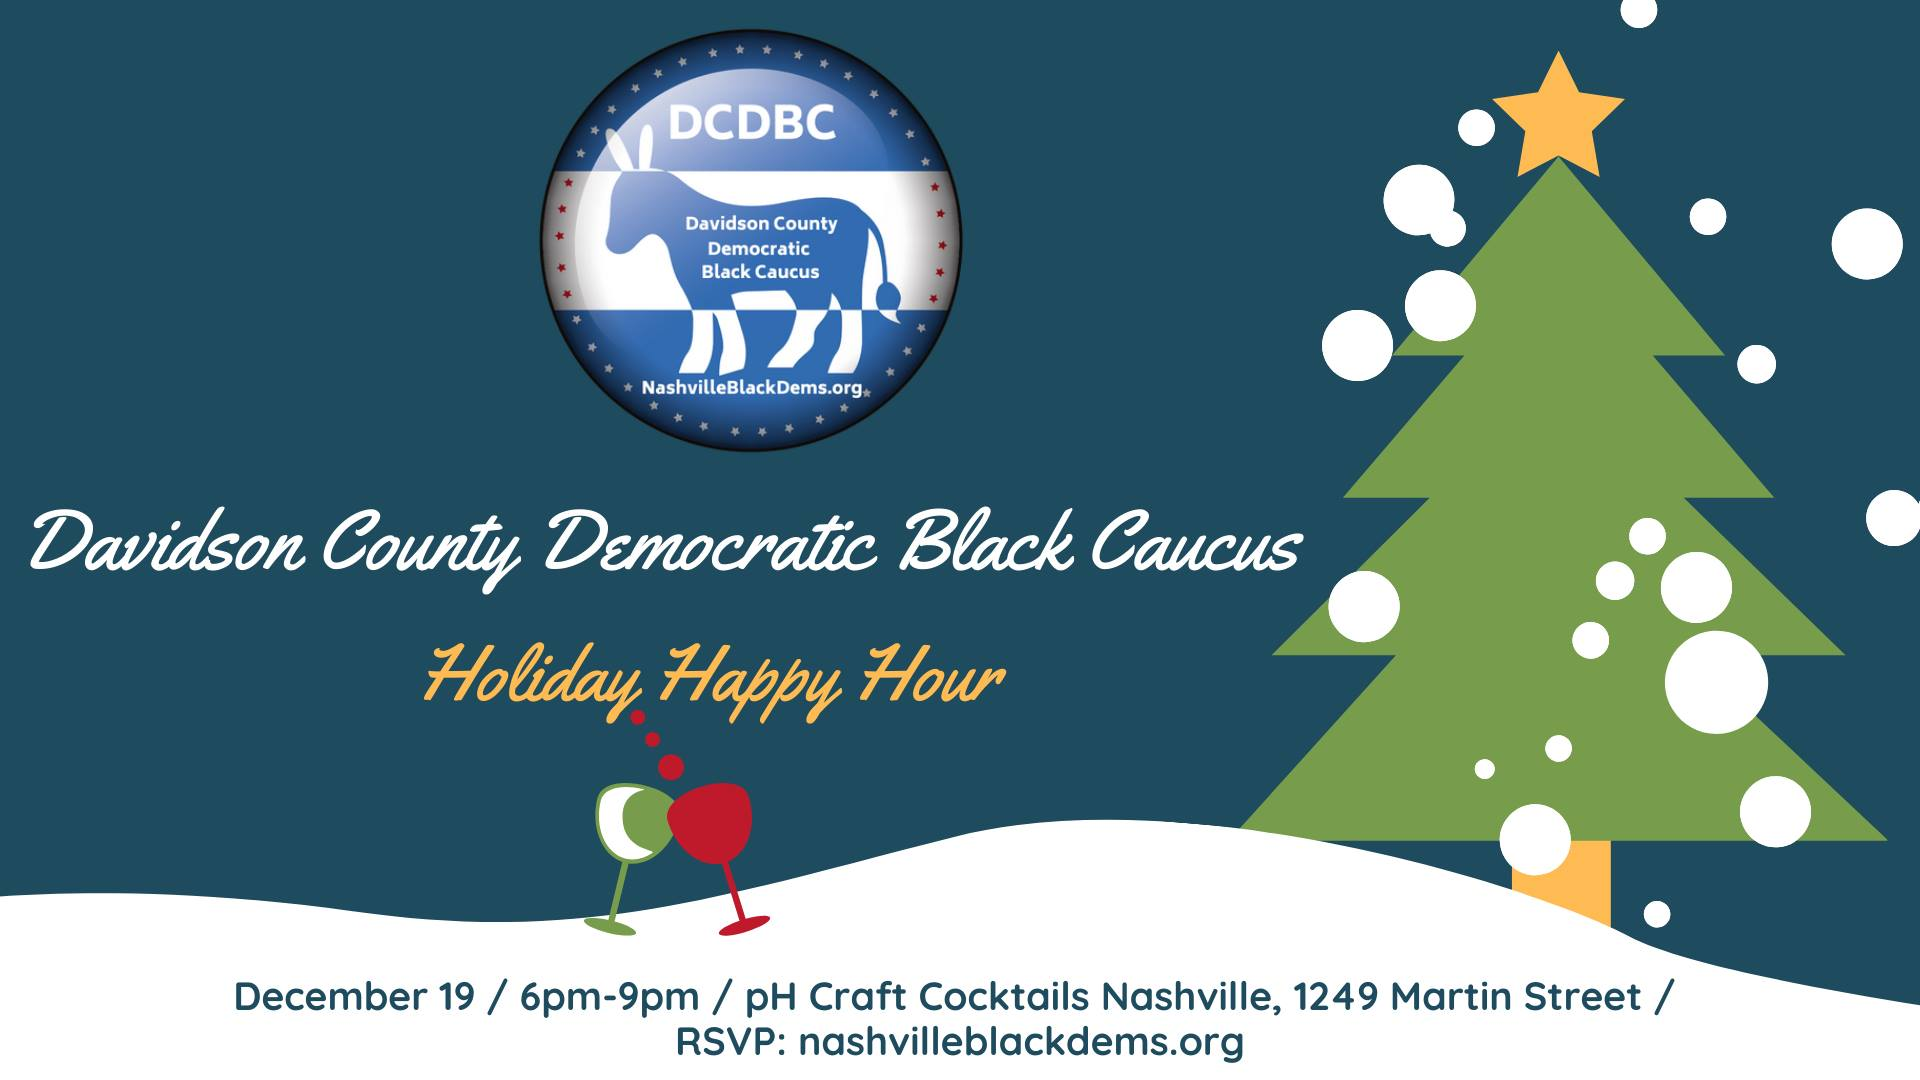 DCDBC_2019_Holiday_Party.jpg